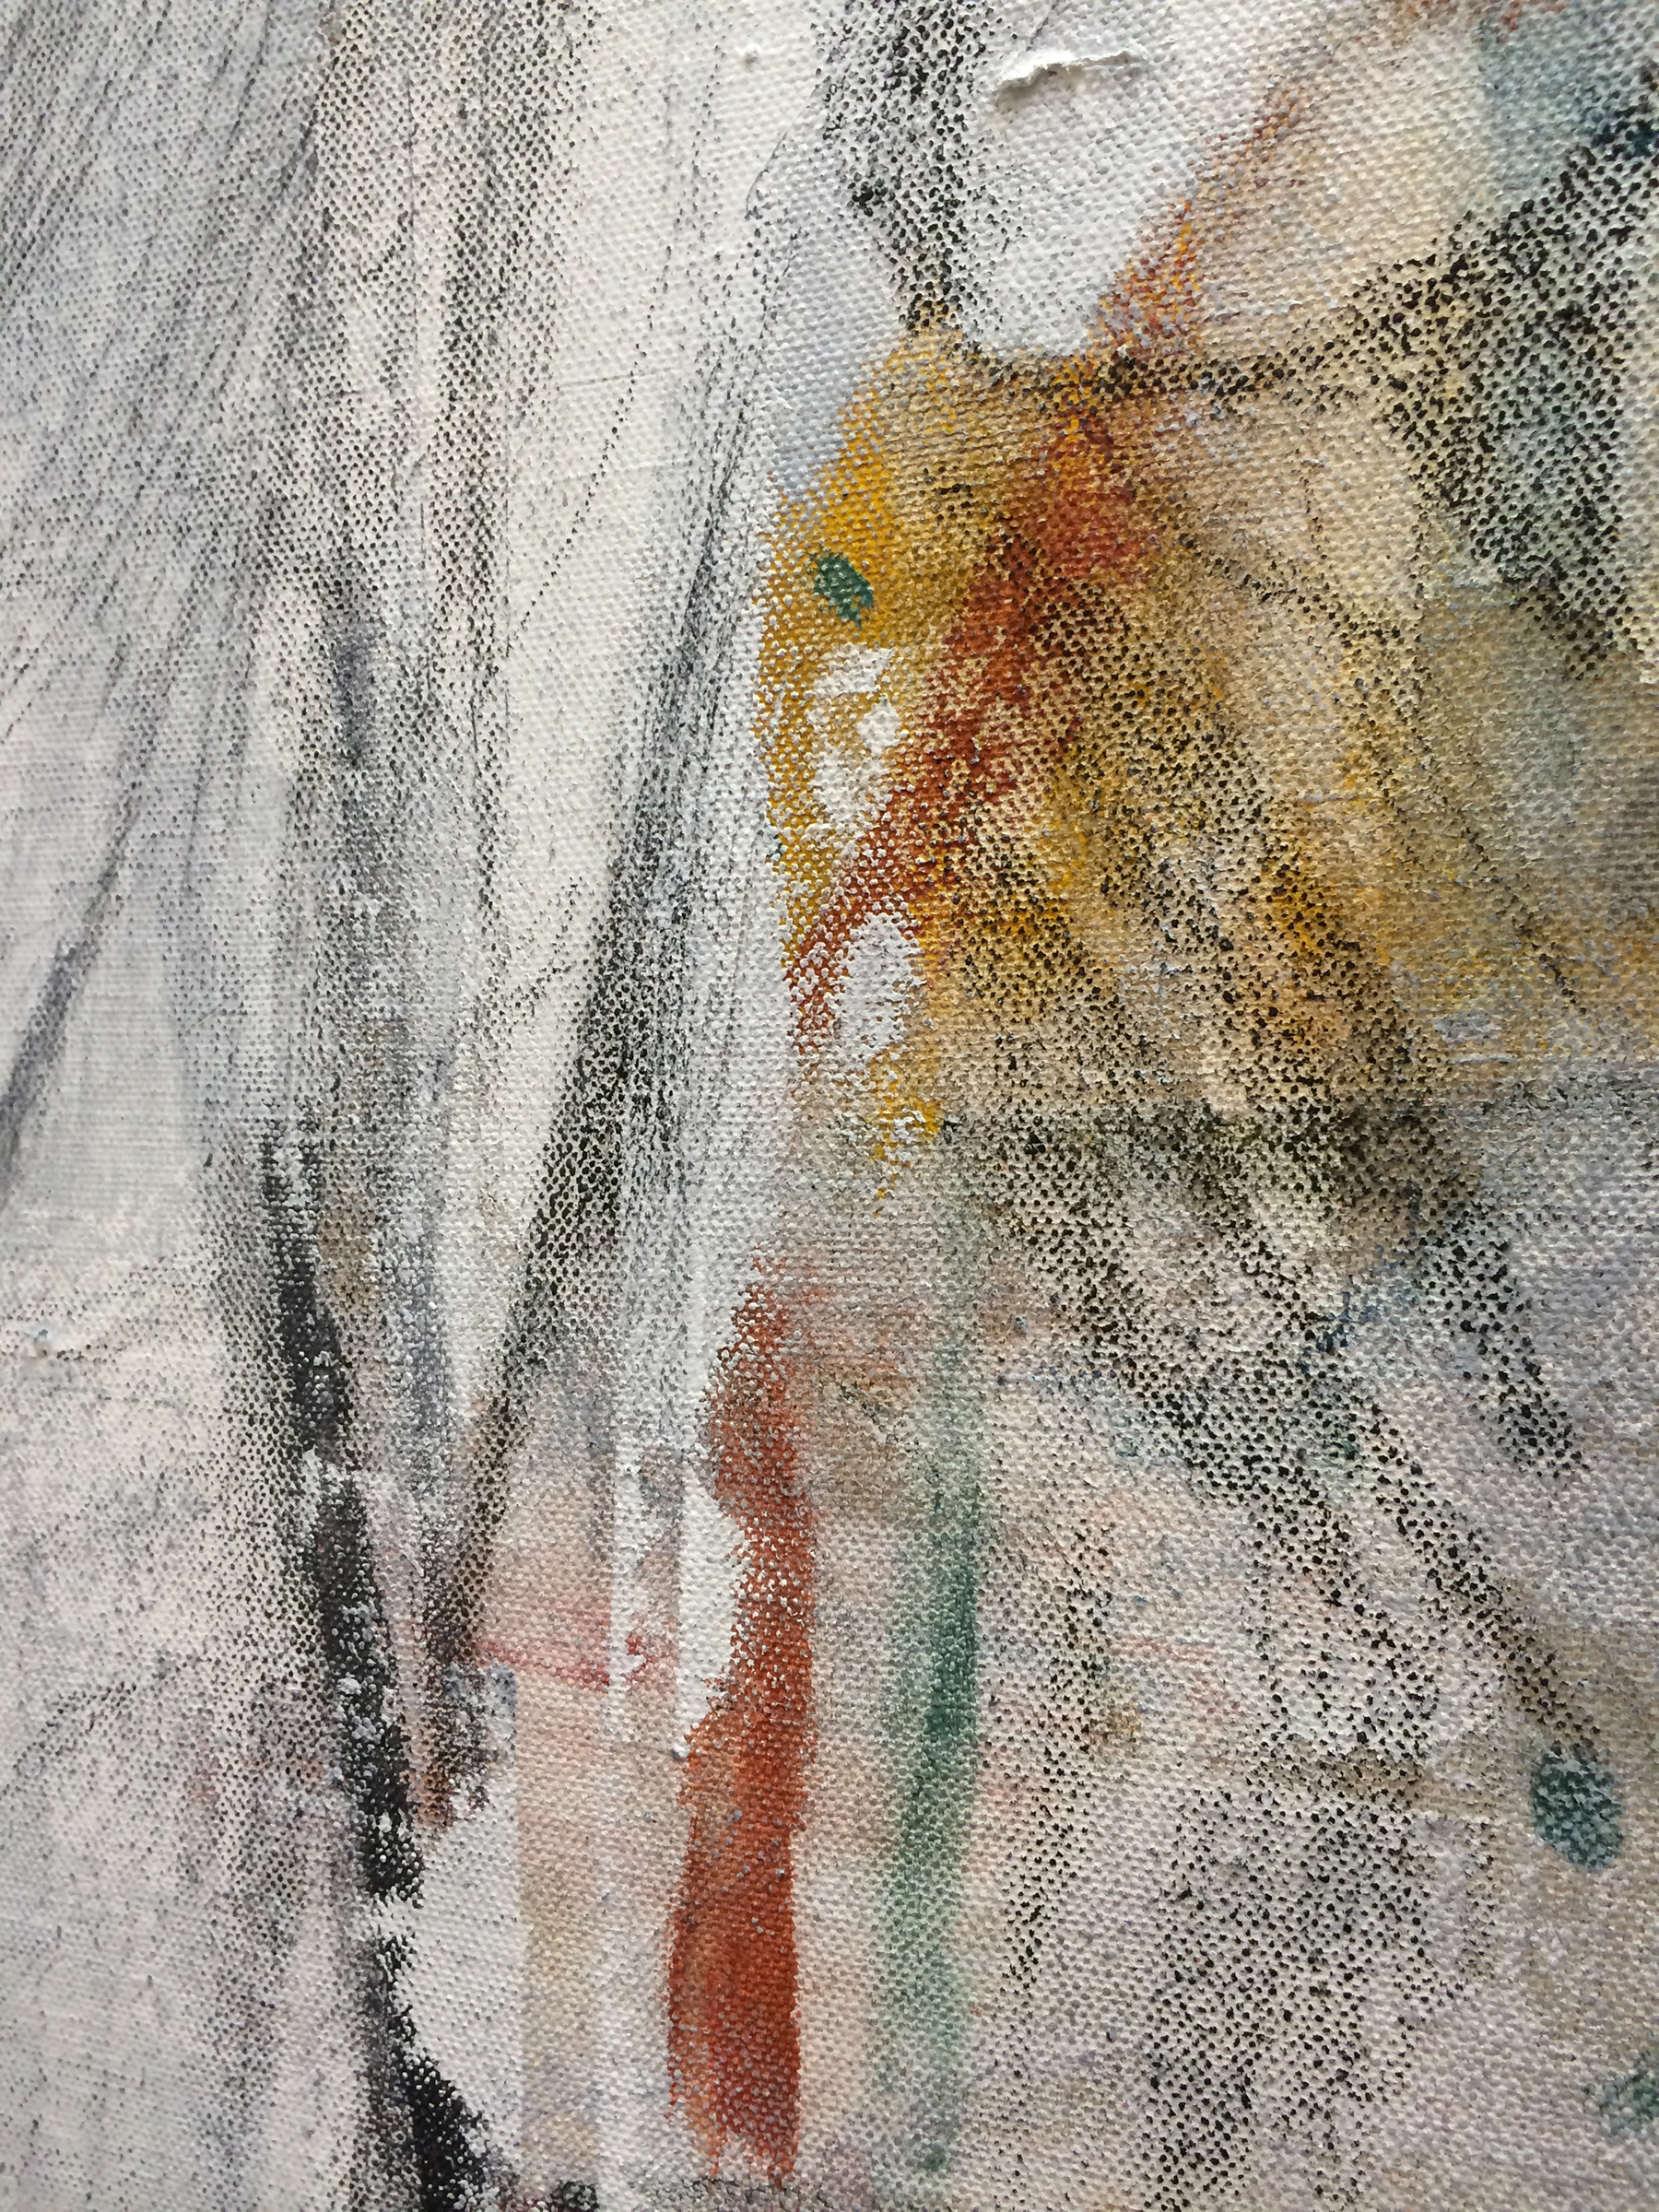 """TED GAHL  (detail) Mosquito , 2015, oil, acrylic, graphite and colord pencil on canvas, 36"""" x 24"""""""